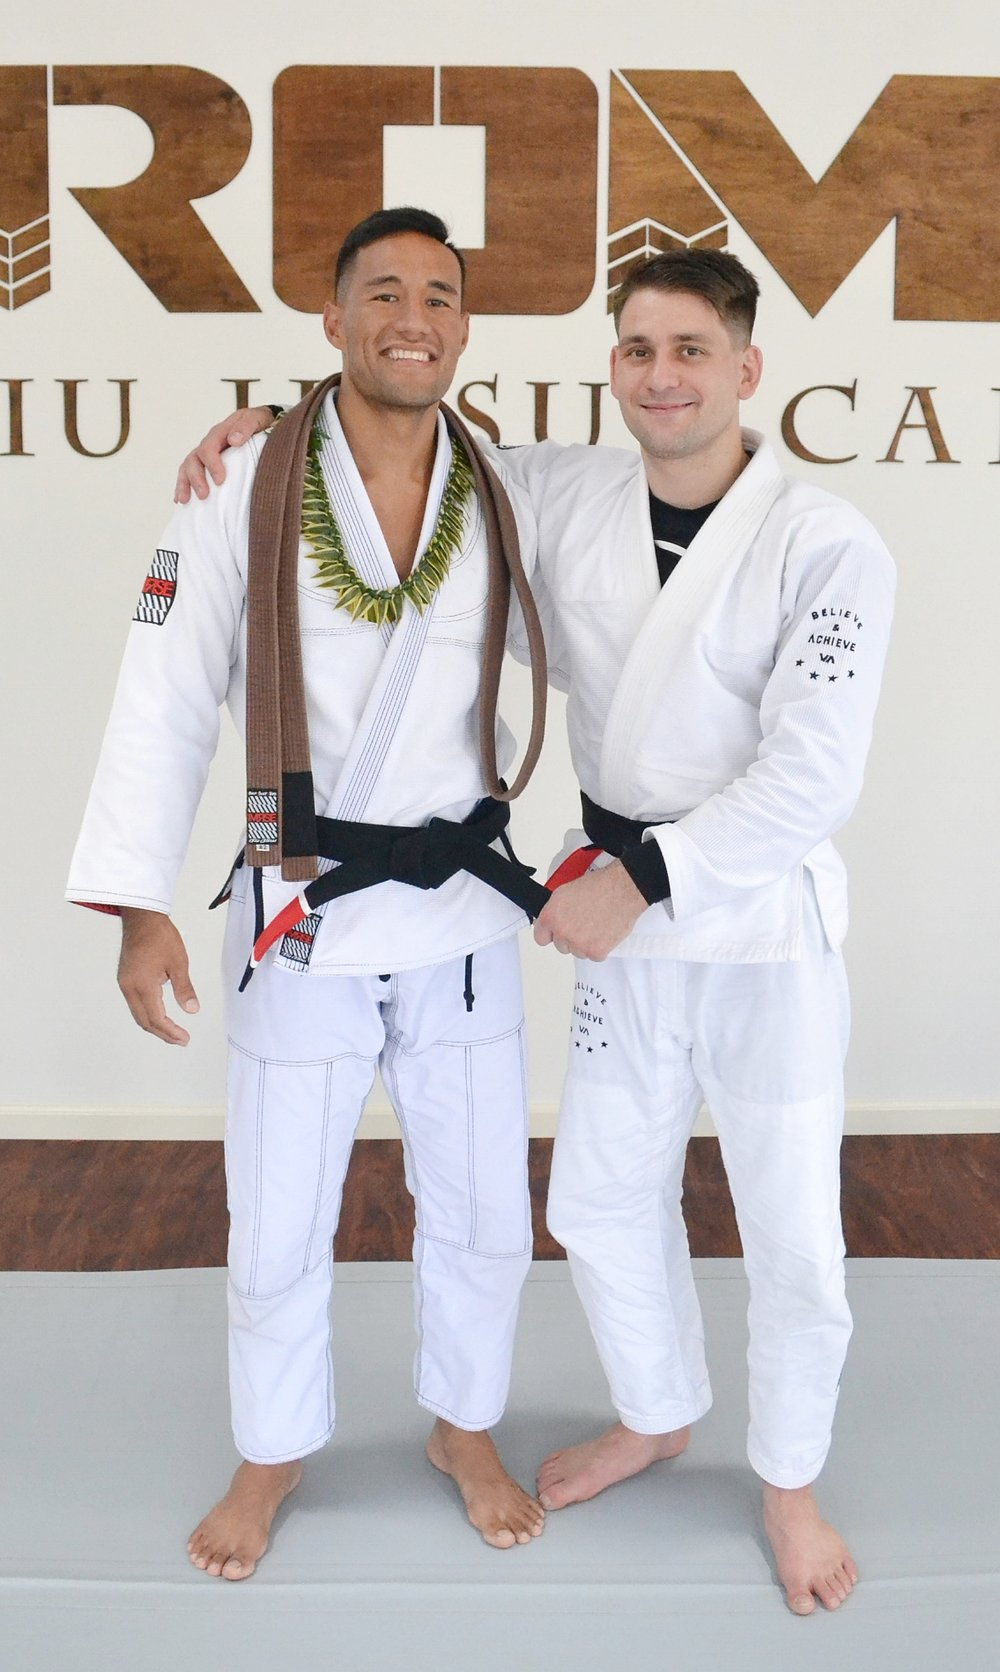 Kawika with Professor Rafael Mendes after receiving his black belt.